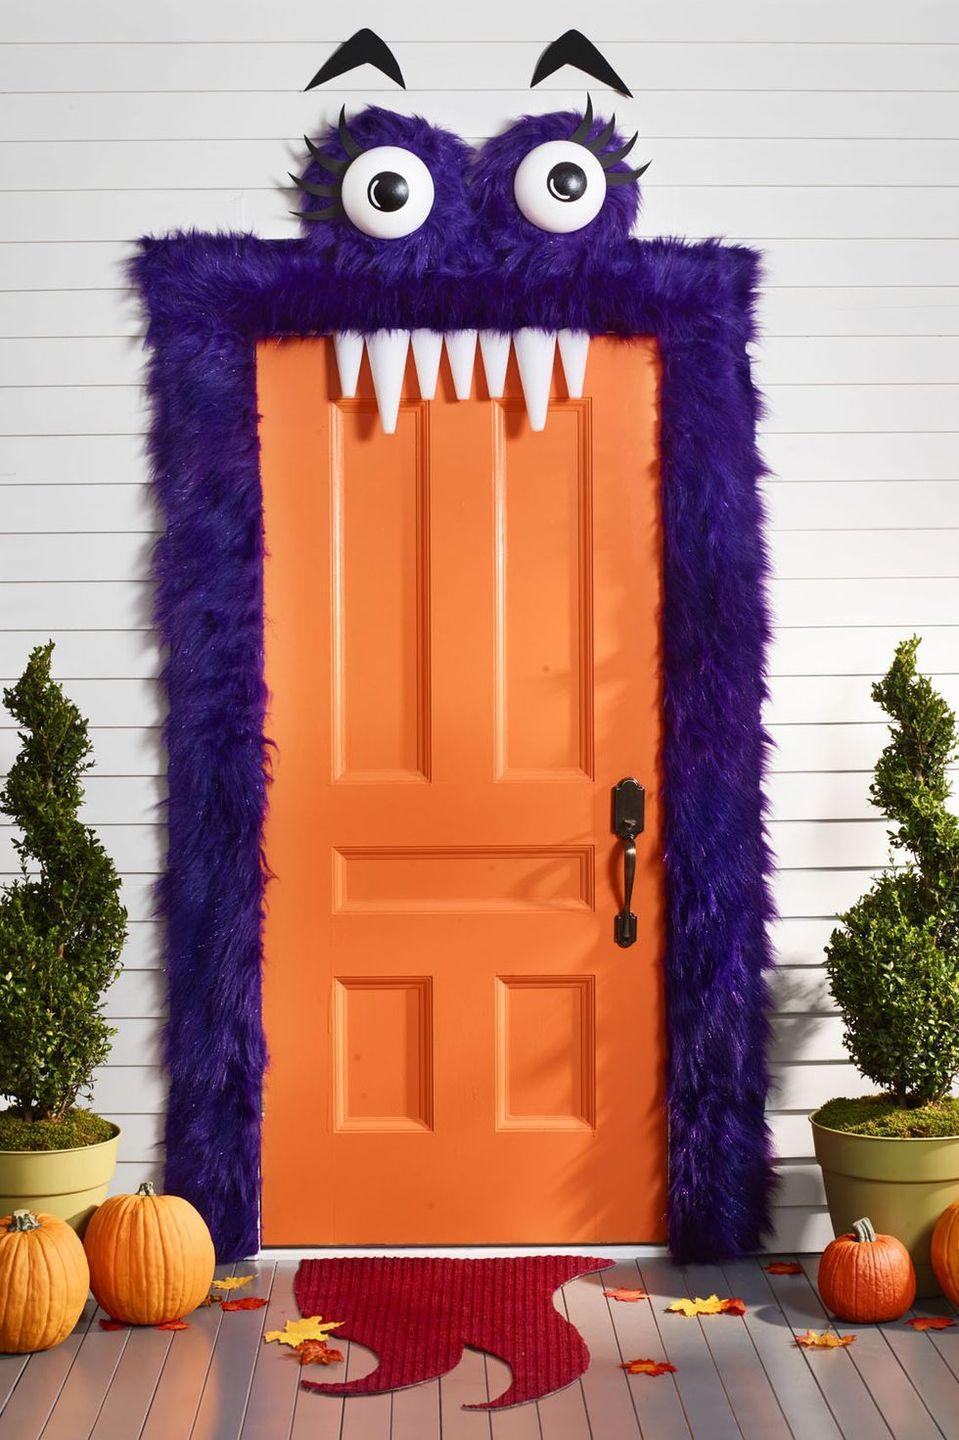 """<p>This quirky DIY entryway will make everyone giggle. To make the eyes, paint black circles on two <a href=""""https://www.amazon.com/Inch-Half-Round-Styrofoam-Polystyrene/dp/B07SQ7736X/ref=sr_1_3?tag=syn-yahoo-20&ascsubtag=%5Bartid%7C10055.g.4602%5Bsrc%7Cyahoo-us"""" rel=""""nofollow noopener"""" target=""""_blank"""" data-ylk=""""slk:8-inch foam half balls"""" class=""""link rapid-noclick-resp"""">8-inch foam half balls</a>. Cut black foam eyelashes and eyebrows from black construction paper. From three yards of <a href=""""https://www.amazon.com/Barcelonetta-Supply-Costume-Decoration-Purple/dp/B07W8HSQHR/?tag=syn-yahoo-20&ascsubtag=%5Bartid%7C10055.g.4602%5Bsrc%7Cyahoo-us"""" rel=""""nofollow noopener"""" target=""""_blank"""" data-ylk=""""slk:faux purple fur"""" class=""""link rapid-noclick-resp"""">faux purple fur</a>, cut two 16-inch squares and hot-glue each around a <a href=""""https://www.amazon.com/Craft-Foam-Wreath-Polystyrene-Decorations/dp/B07FNK6YMB/?tag=syn-yahoo-20&ascsubtag=%5Bartid%7C10055.g.4602%5Bsrc%7Cyahoo-us"""" rel=""""nofollow noopener"""" target=""""_blank"""" data-ylk=""""slk:12-inch foam wreath"""" class=""""link rapid-noclick-resp"""">12-inch foam wreath</a>. Glue eyeballs in the center and eyelashes across the top. Add a horizontal string across the back of each eye for hanging. Frame the door with strips of fur using tacks of <a href=""""https://www.amazon.com/Outus-Fabric-Fusing-Adhesive-Iron/dp/B06VVJXQS4/?tag=syn-yahoo-20&ascsubtag=%5Bartid%7C10055.g.4602%5Bsrc%7Cyahoo-us"""" rel=""""nofollow noopener"""" target=""""_blank"""" data-ylk=""""slk:hem tape"""" class=""""link rapid-noclick-resp"""">hem tape</a>. Use <a href=""""https://www.amazon.com/Command-Designer-Medium-6-Hooks-17081-6ES/dp/B002VP6TIY/?tag=syn-yahoo-20&ascsubtag=%5Bartid%7C10055.g.4602%5Bsrc%7Cyahoo-us"""" rel=""""nofollow noopener"""" target=""""_blank"""" data-ylk=""""slk:Command Hooks"""" class=""""link rapid-noclick-resp"""">Command Hooks</a> to hang the eyes above. Tack or hem tape the eyebrows in place. For teeth, use foam cones, and then attach them to the top of the door frame with hem tape.</p>"""